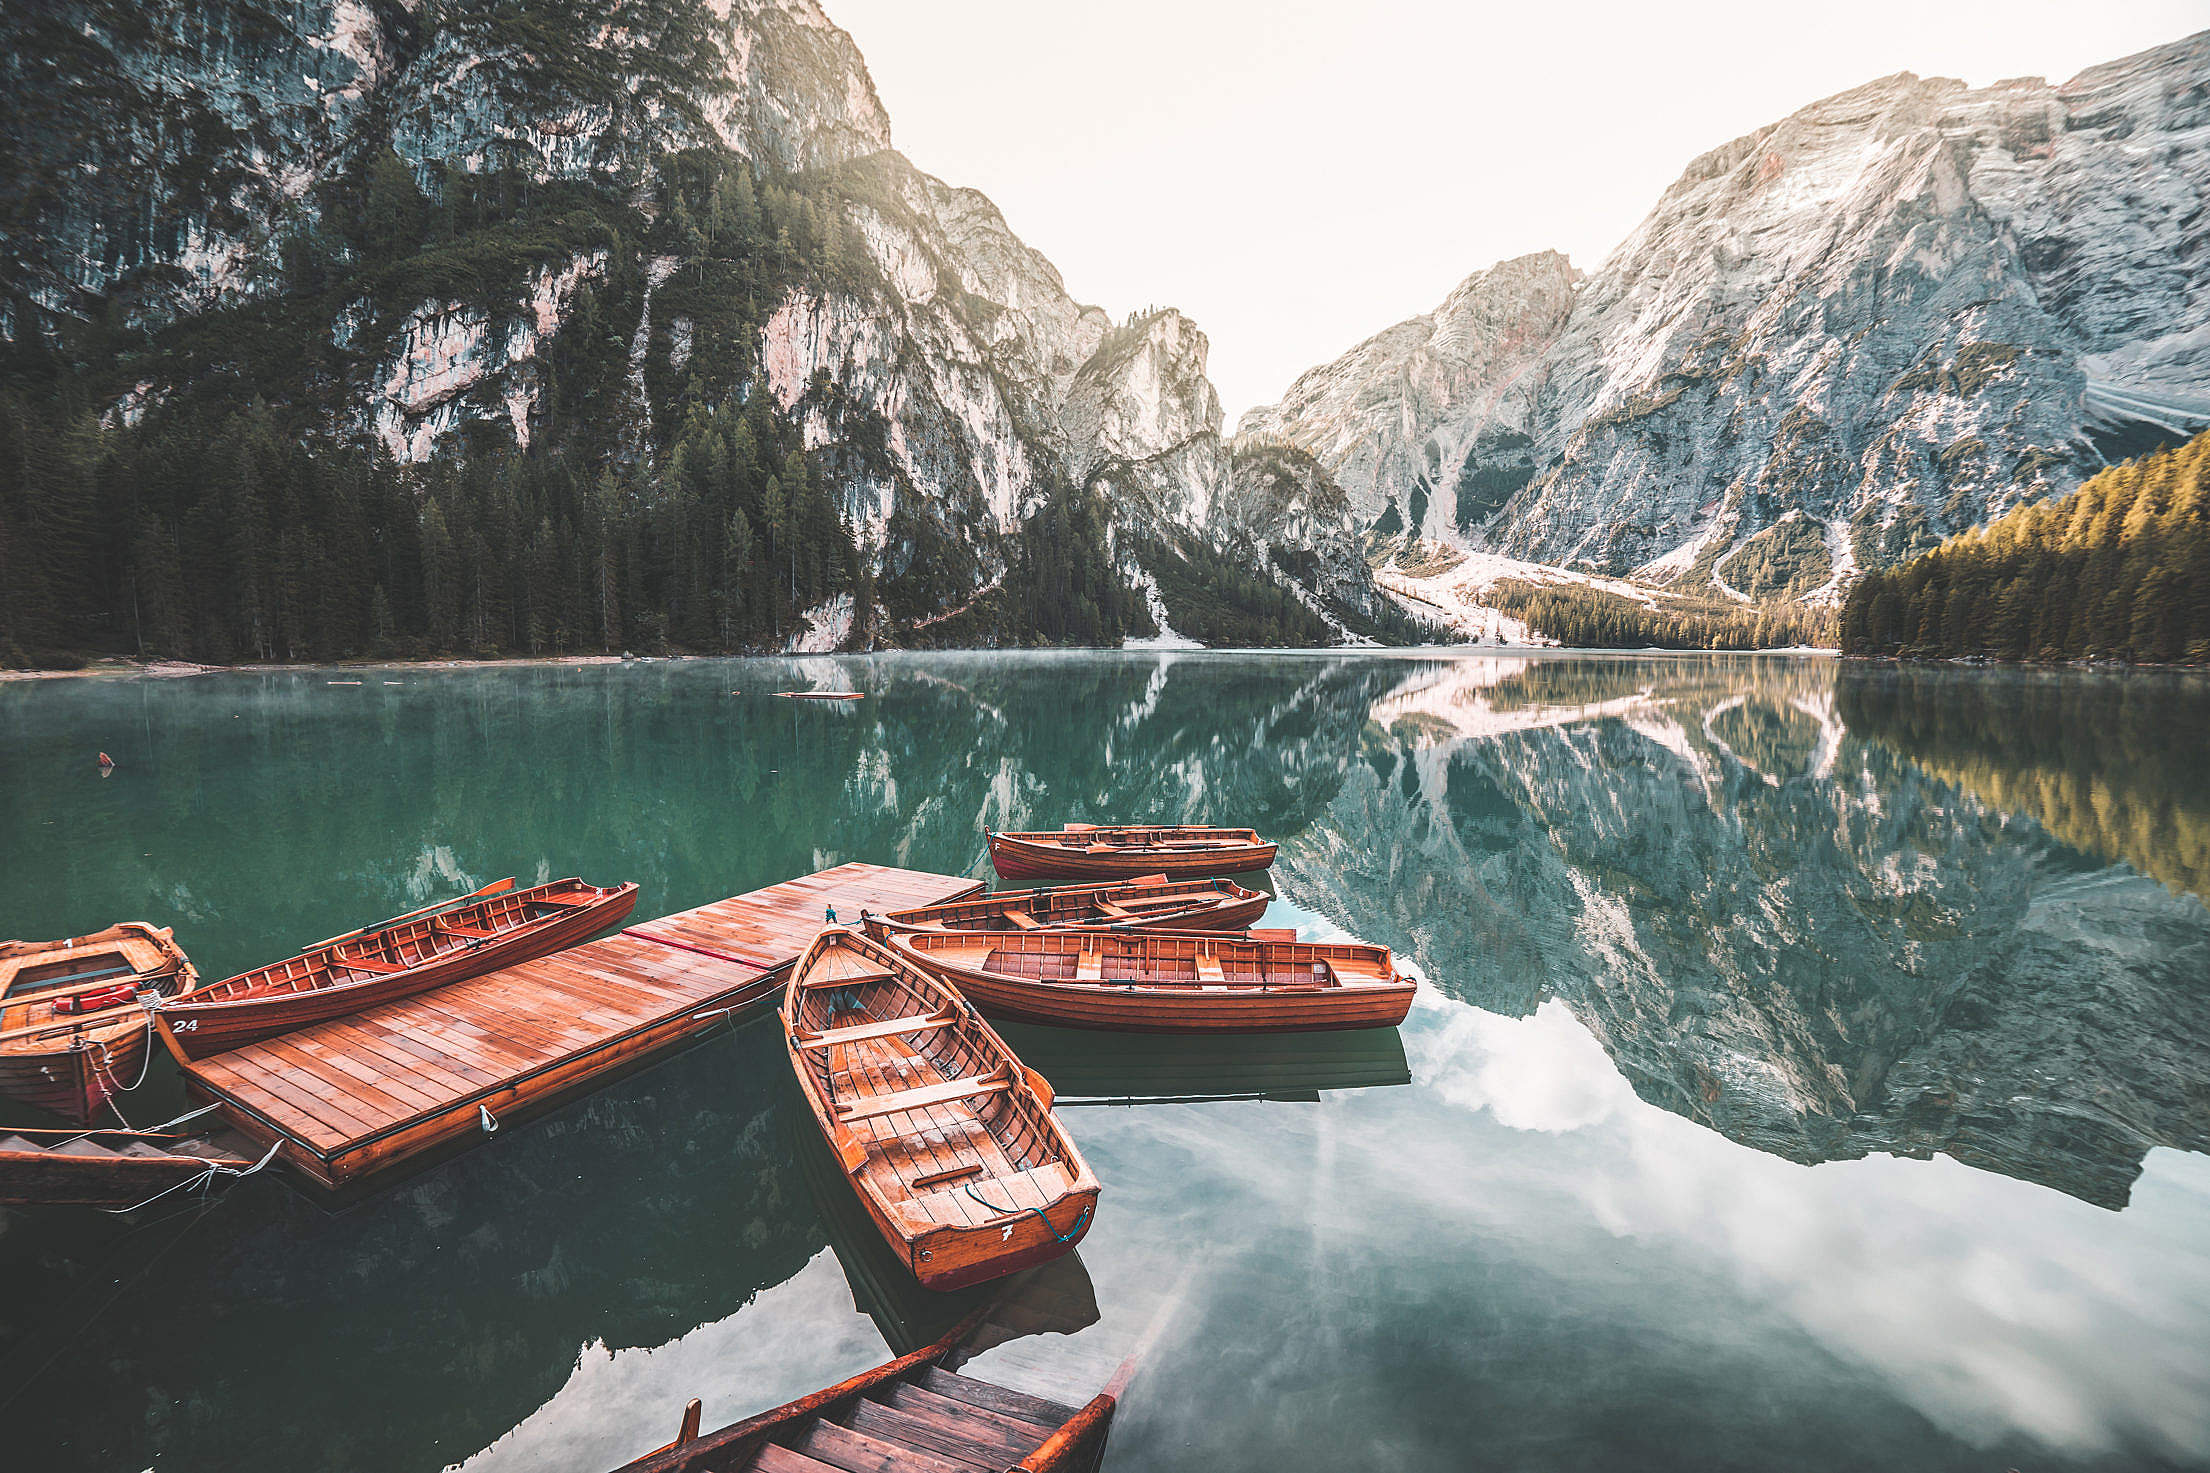 Old Wooden Rowing Boats on Lago di Braies (Pragser Wildsee) Free Stock Photo